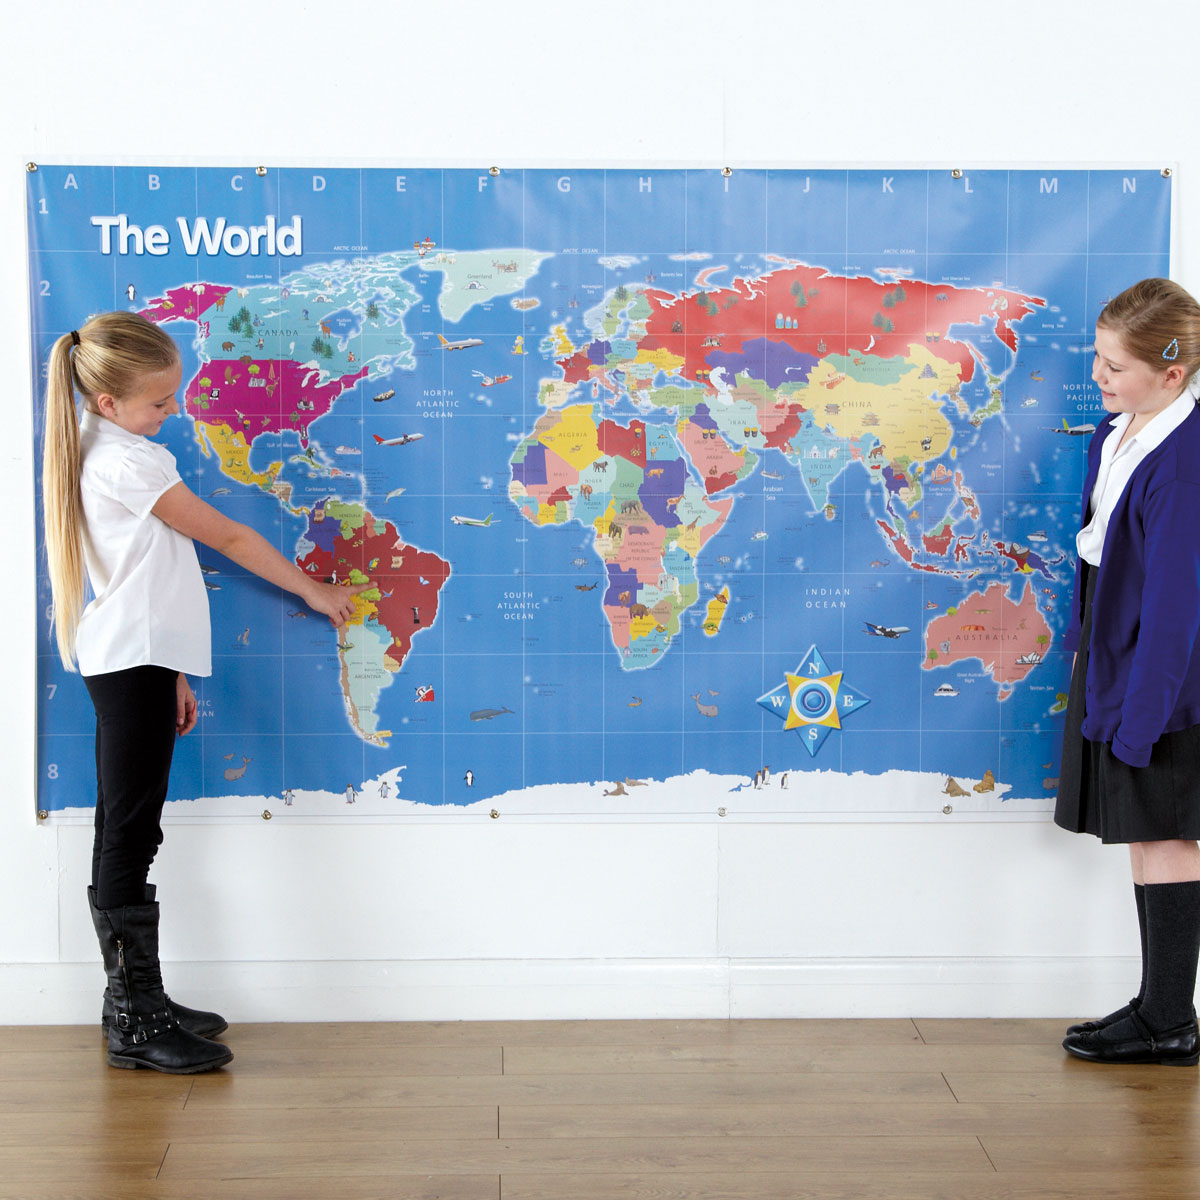 Tts bee bot mat world map ge00466 buy at primary ict for tts bee bot mat world map ge00466 gumiabroncs Choice Image